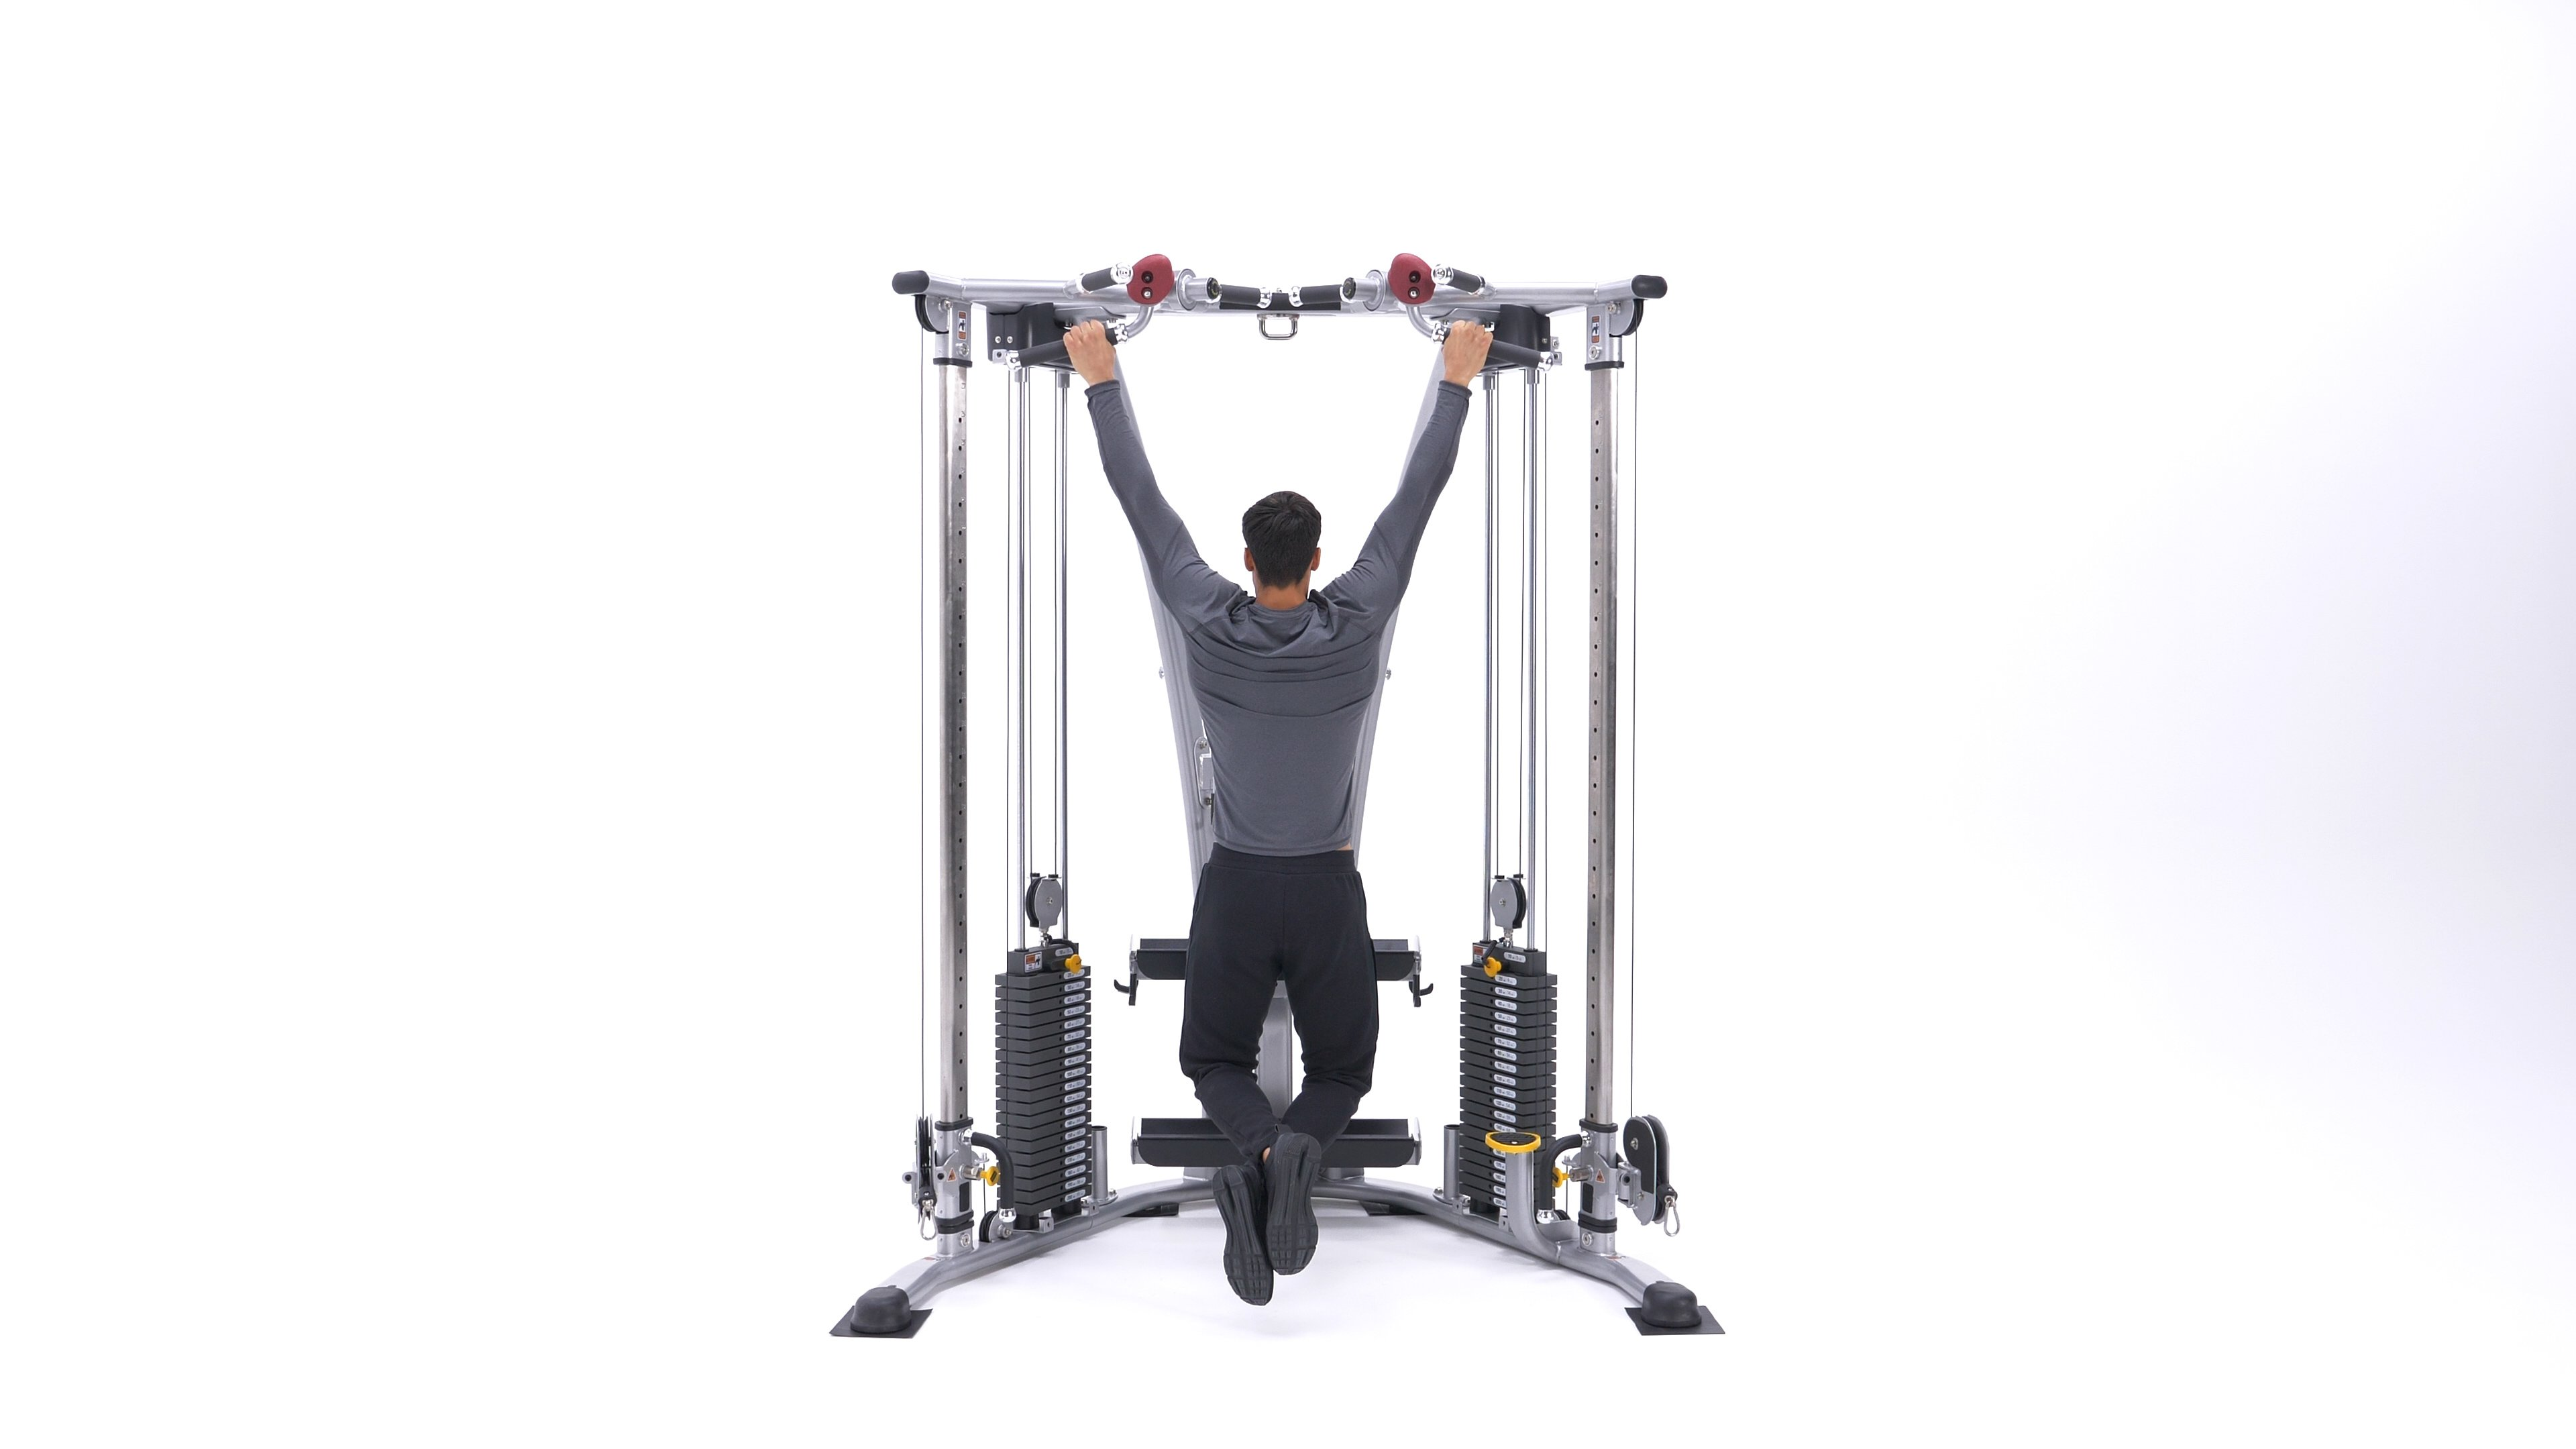 Negative pull-up image